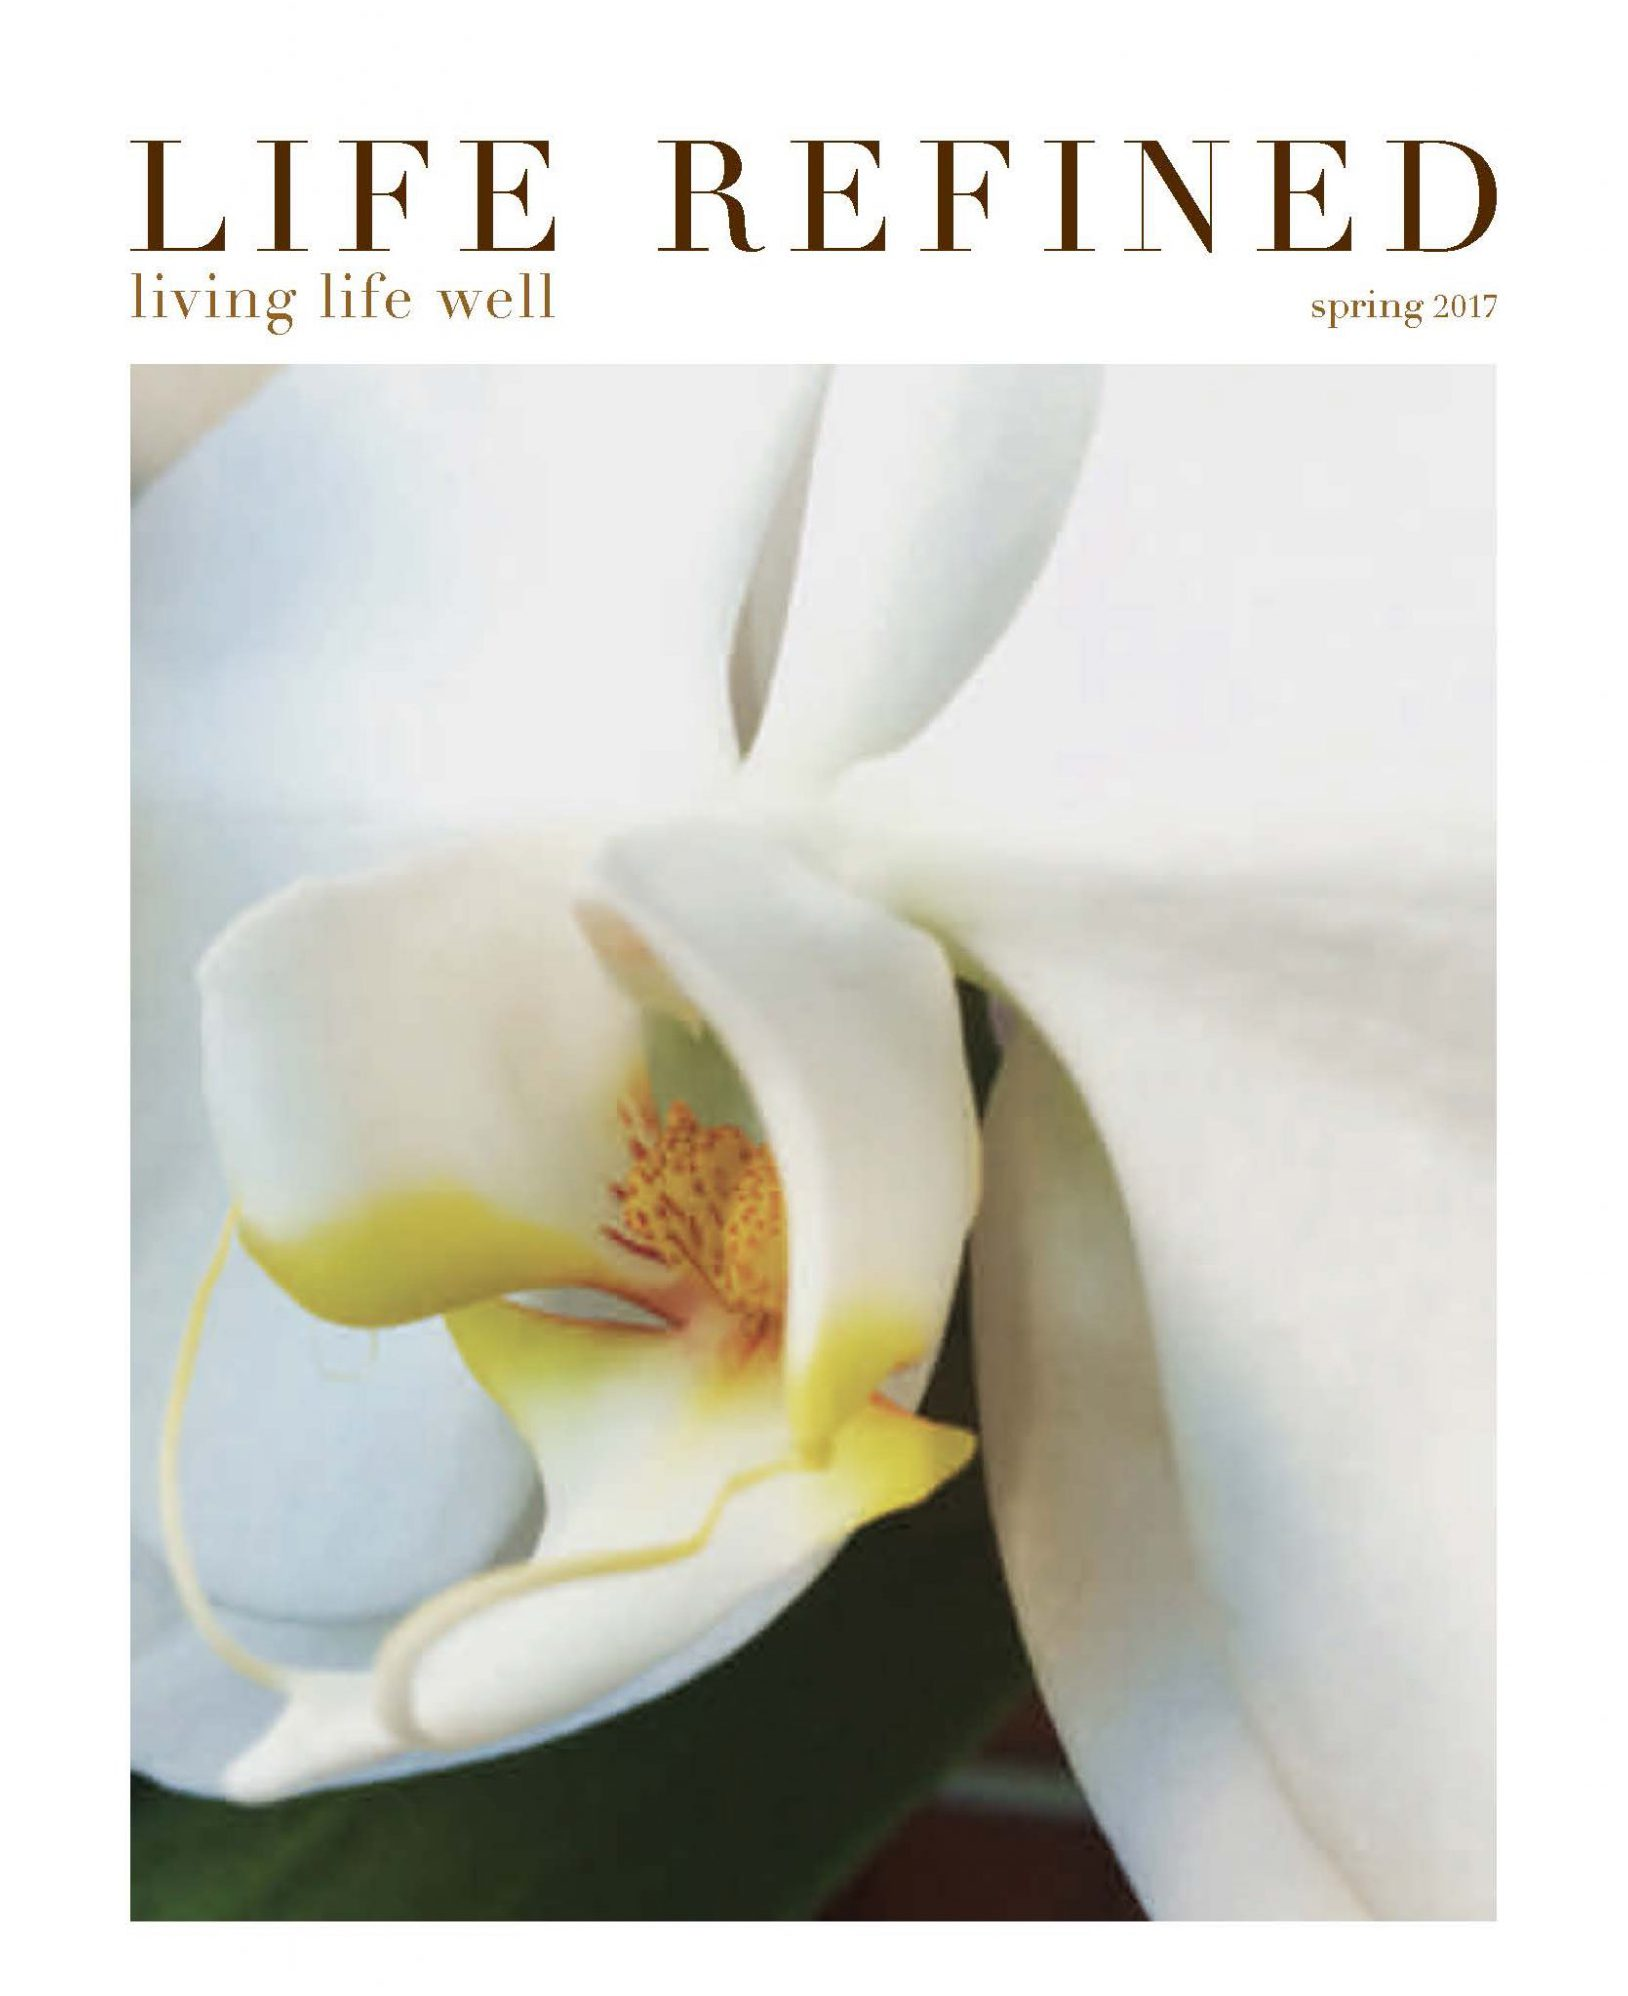 Cover of Life Refined magazine.